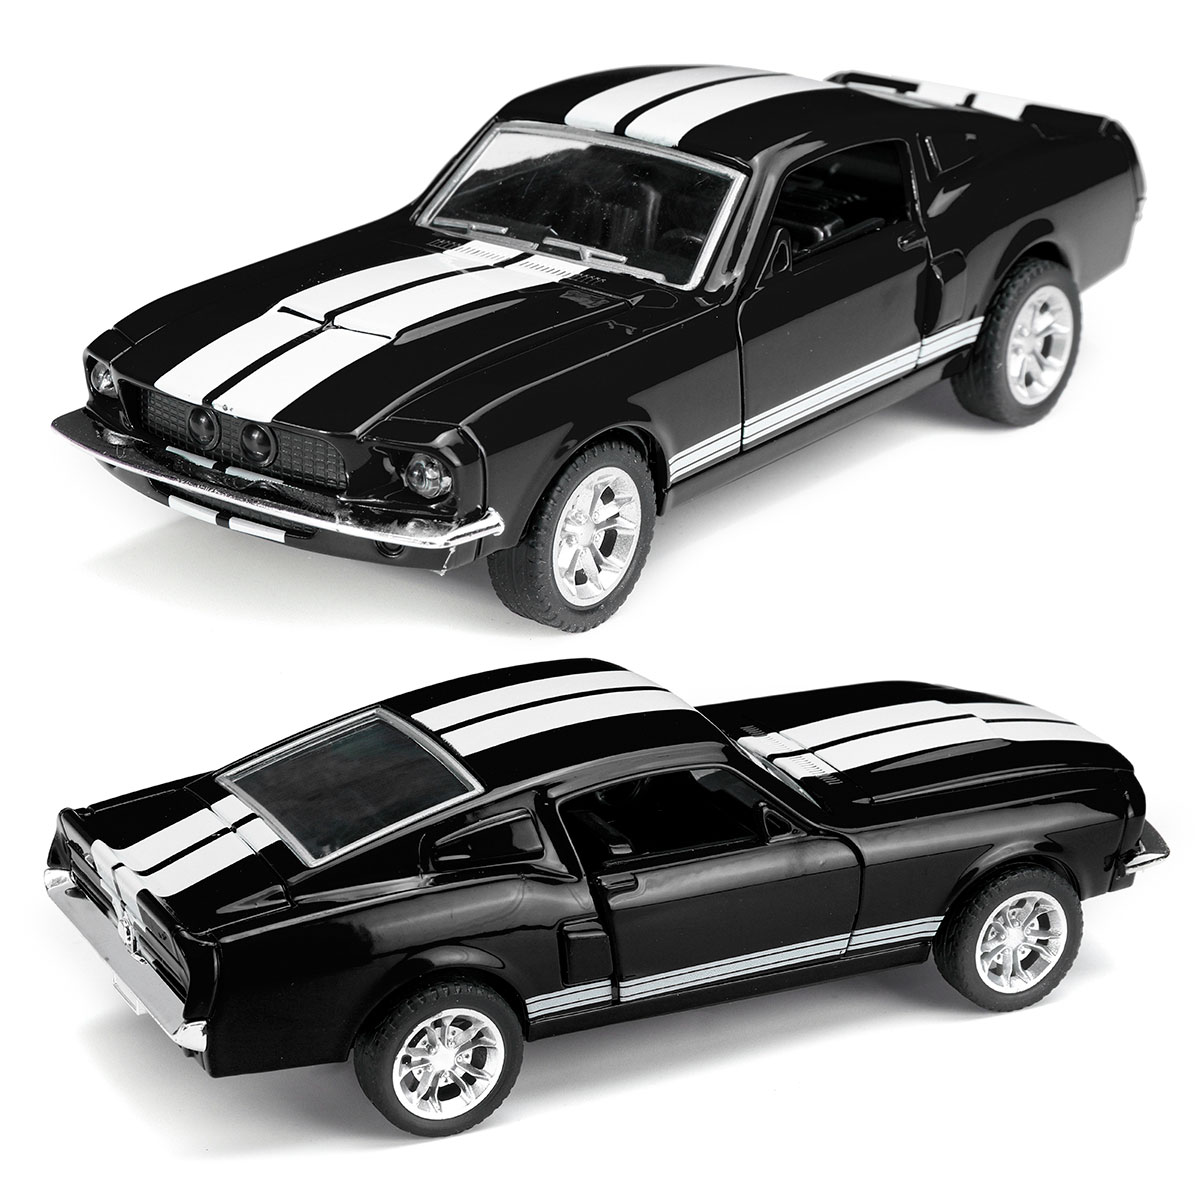 1:32 Diecasts Vehicle Car Toy Car Model Pull Back For Children Pull Back Models  Boy Kids Gifts For Ford Mustang GT 1967 GT500